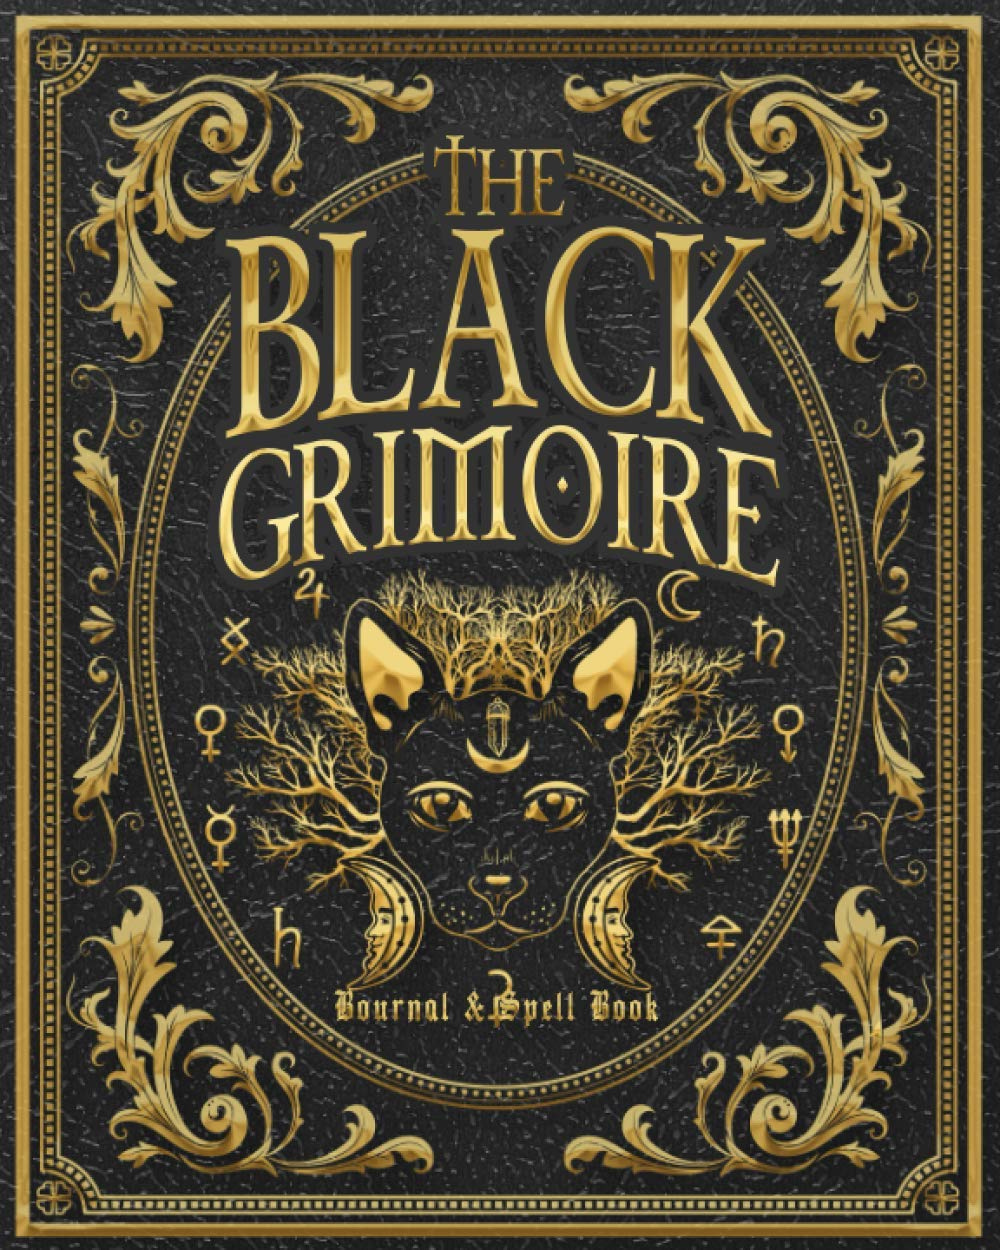 The Black Grimoire: Black Cat Magic Witch Journal and Spell Book